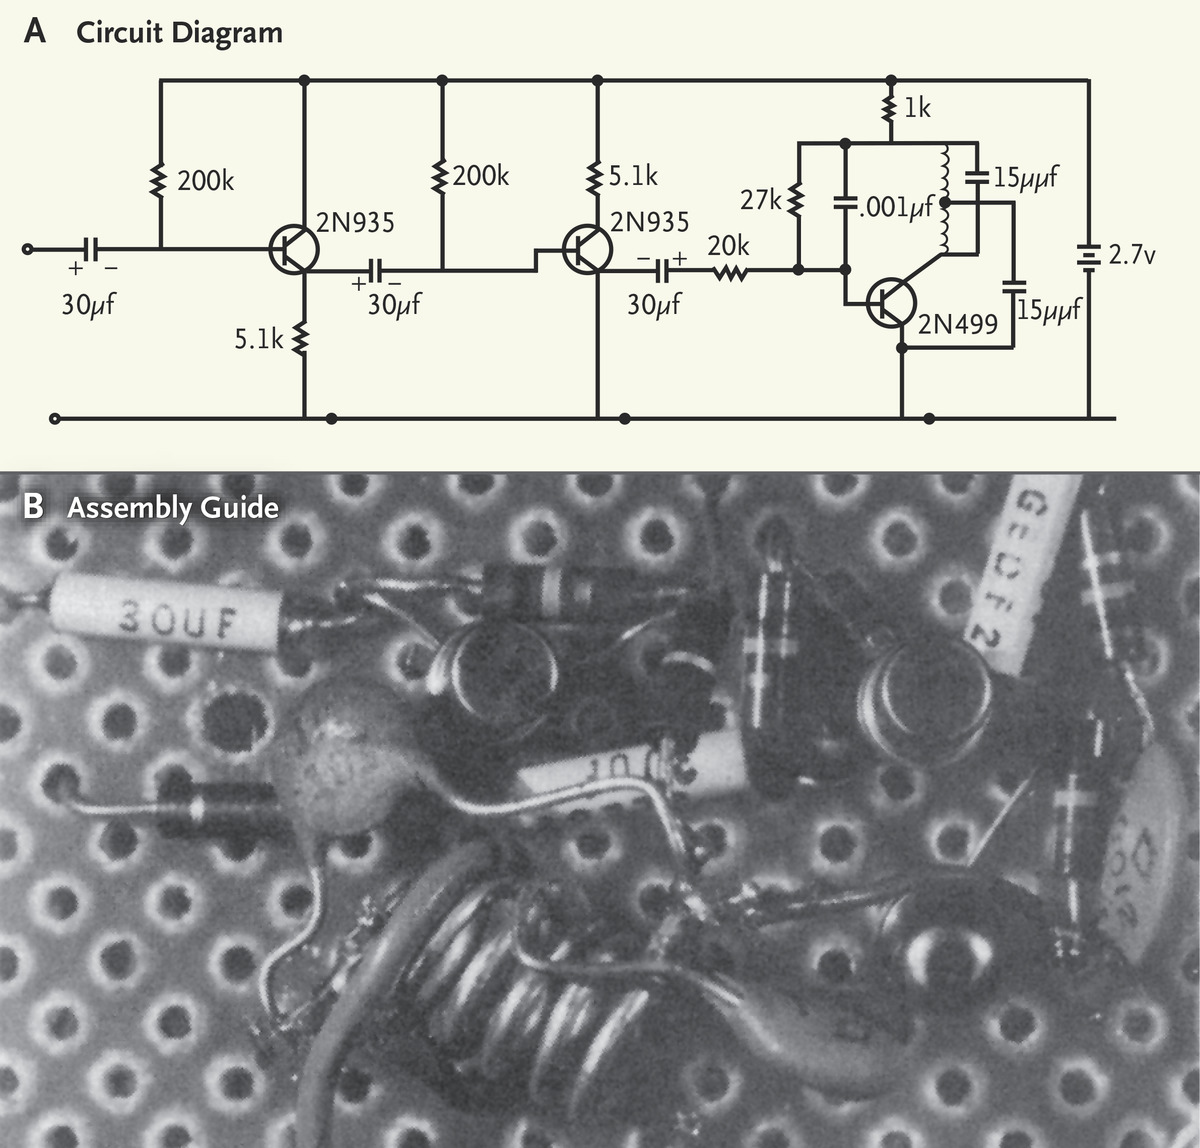 Do it yourself medical devices technology and empowerment in fascenellis circuit diagram panel a and assembly guide panel b for a do it yourself cardiac radiotelemetry system solutioingenieria Images